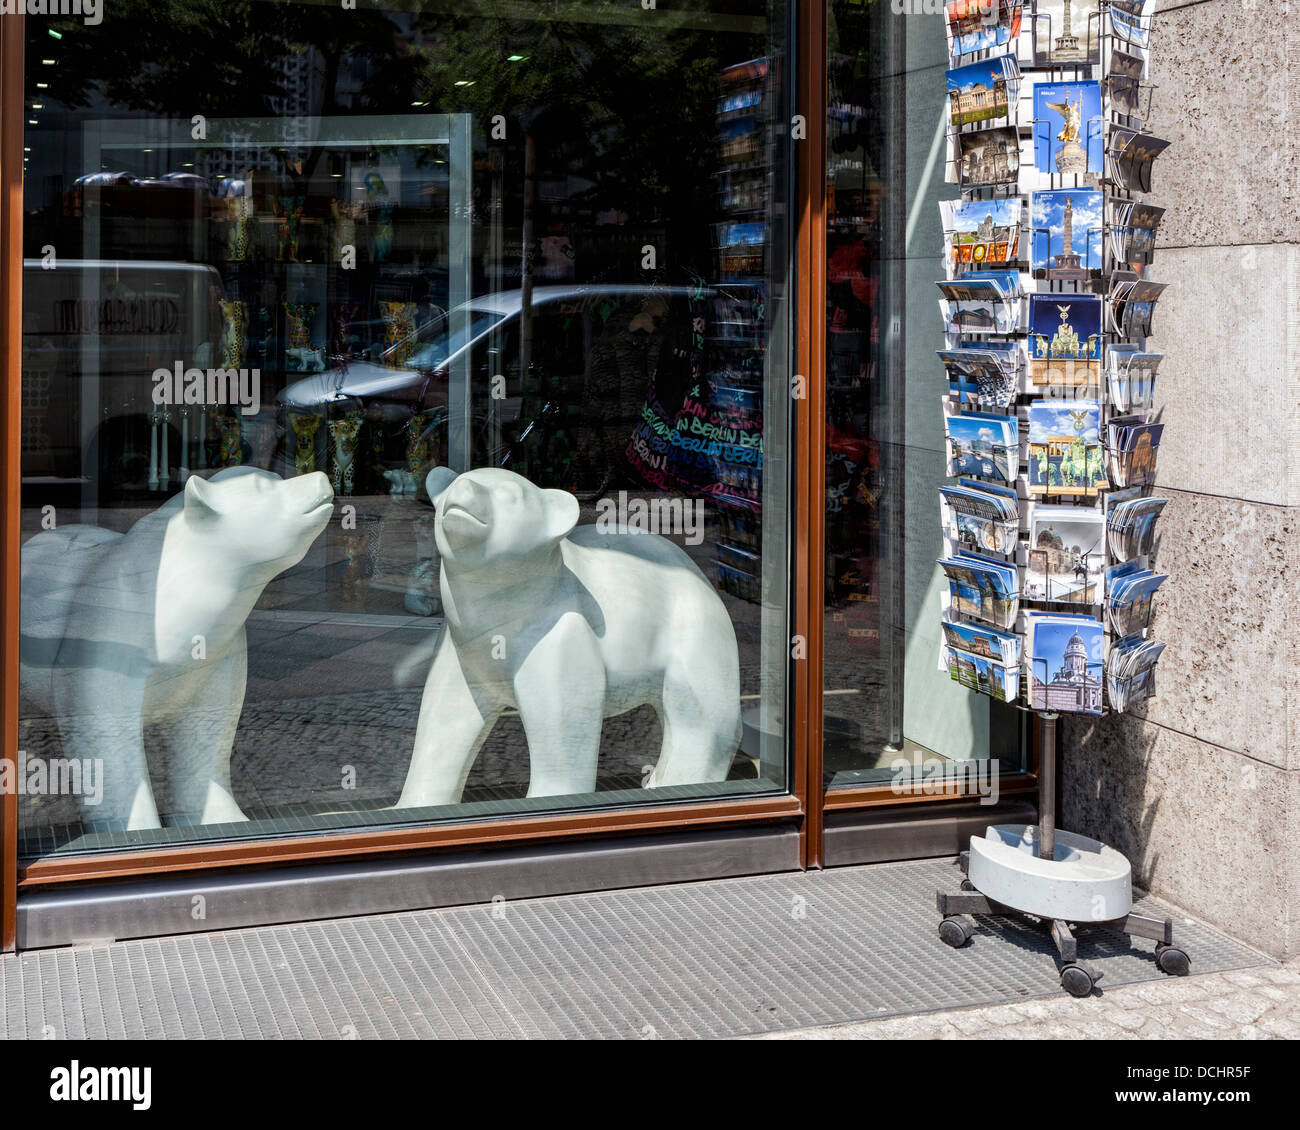 Two white Berlin bears and a rack of postcards in front of a curio shop in Unter den Linden, Berlin - Stock Image